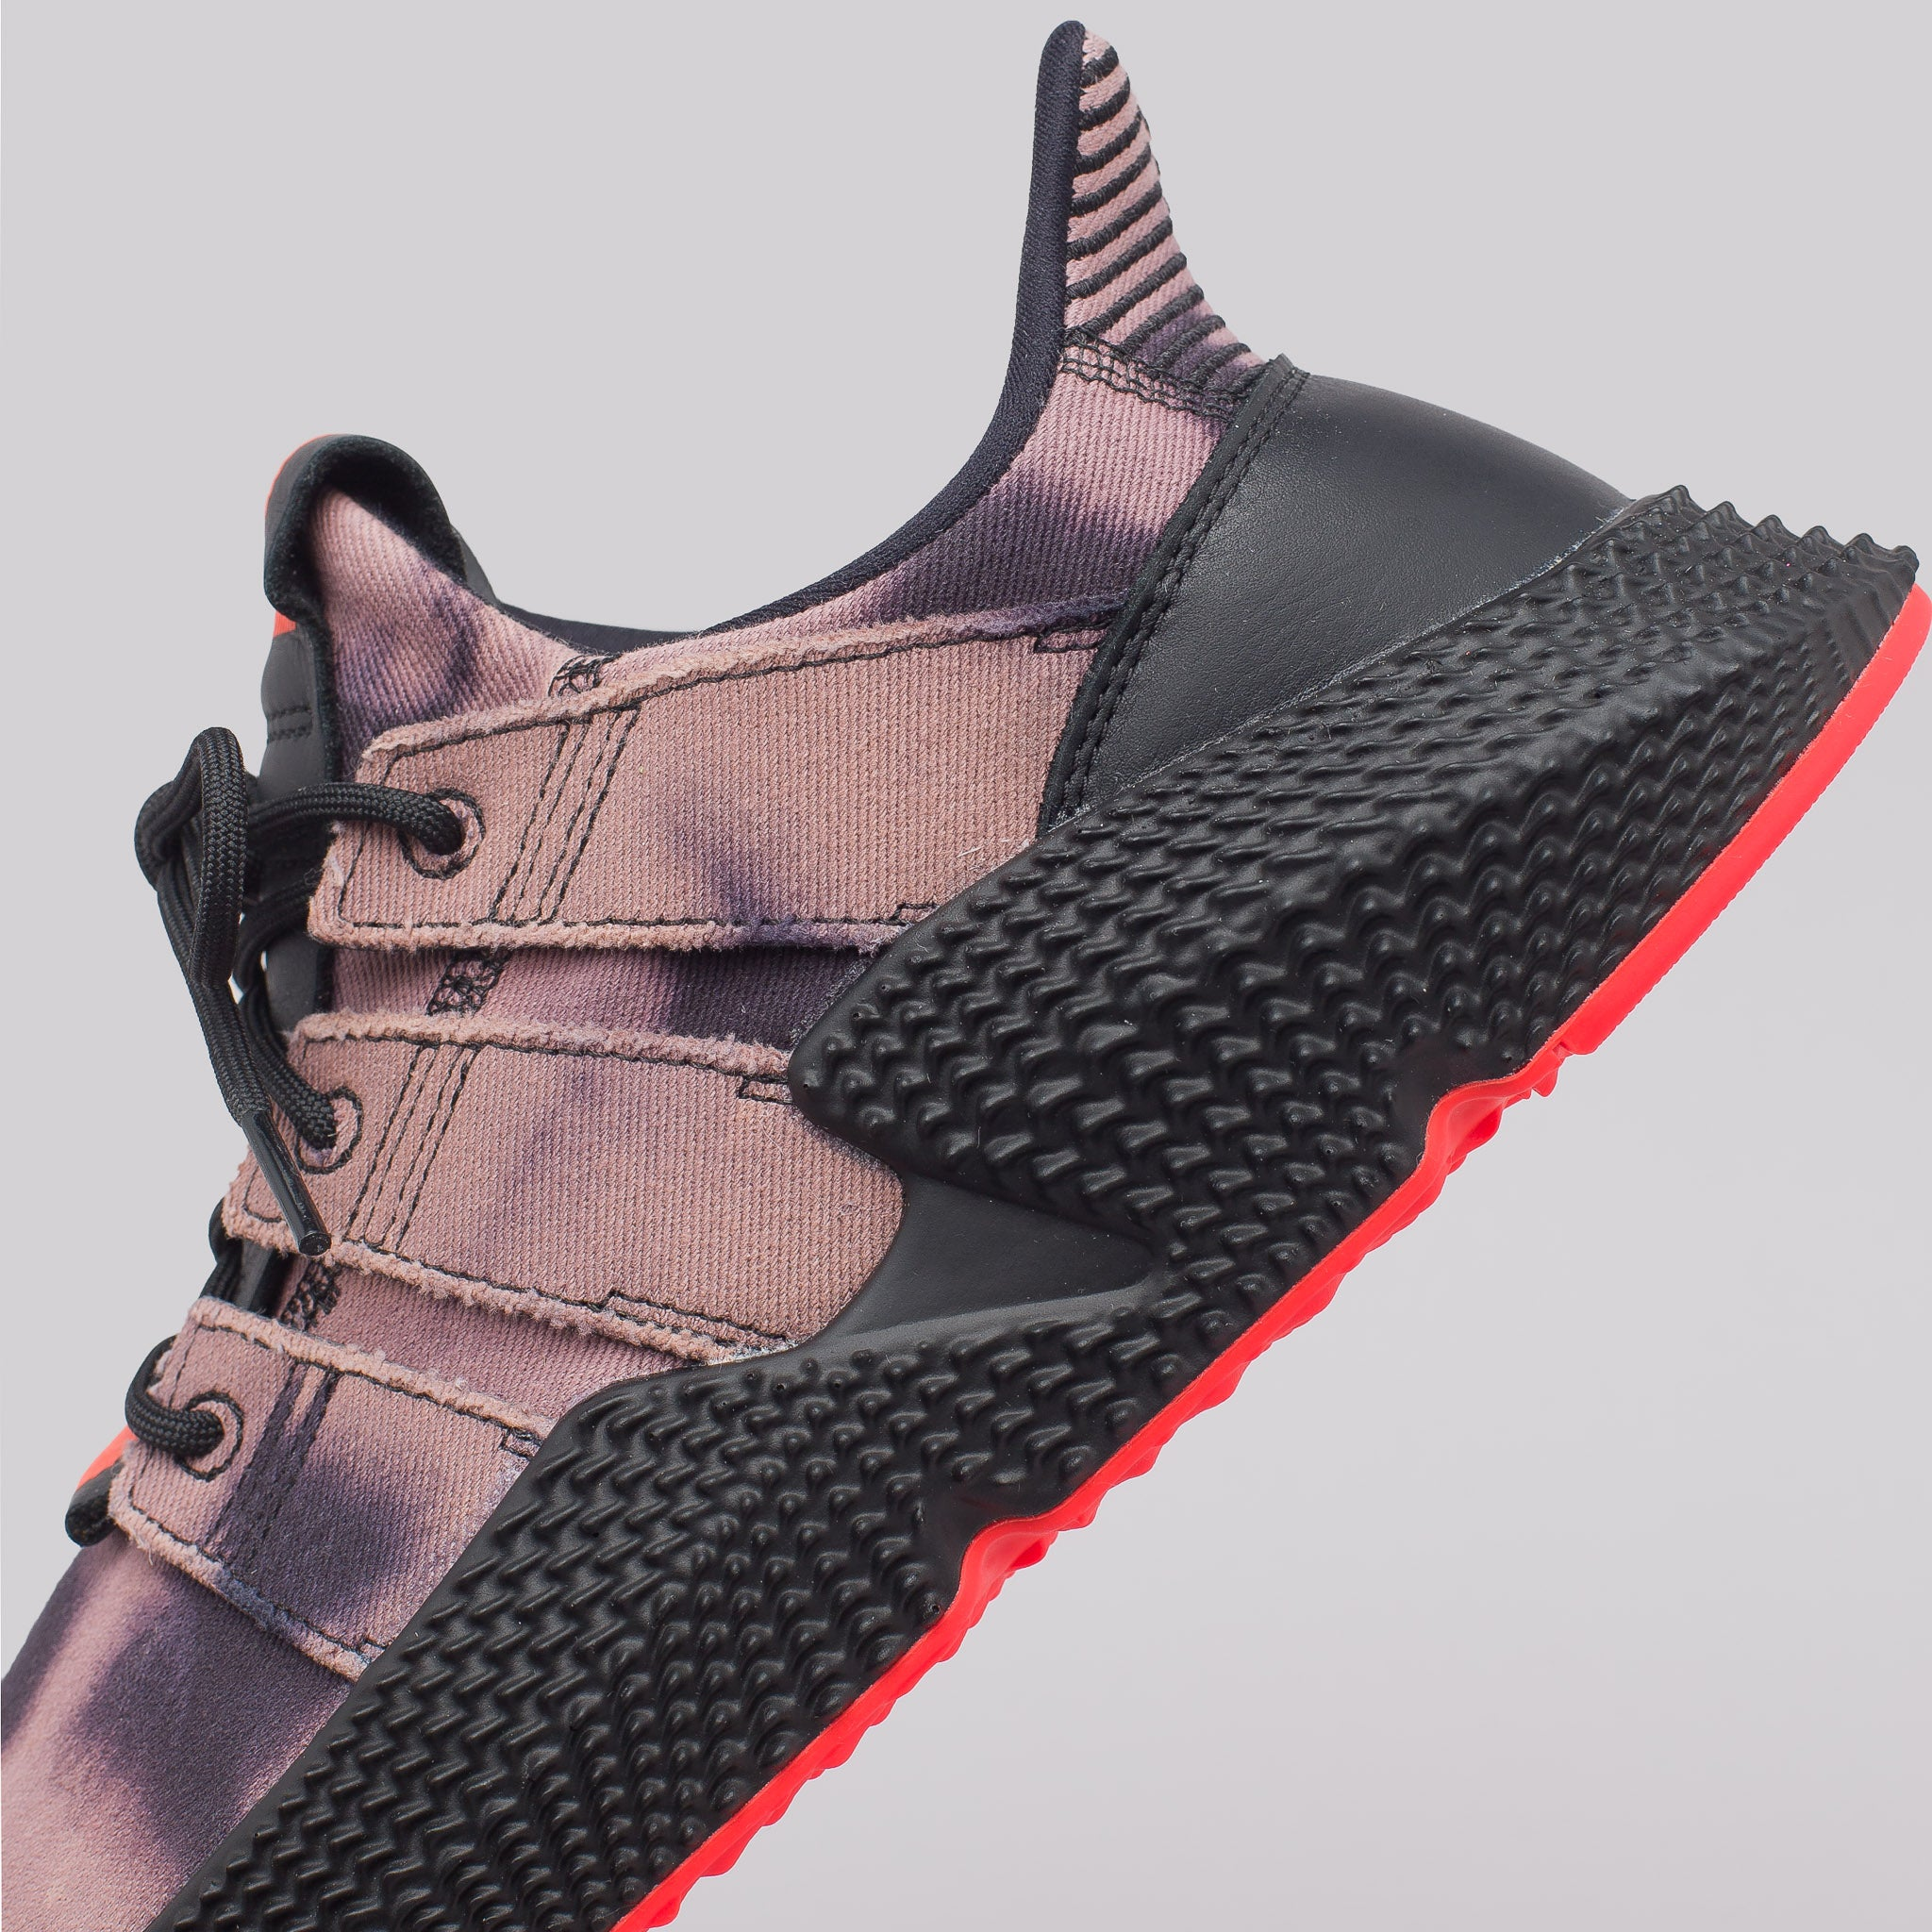 Prophere in Black/Solar Red